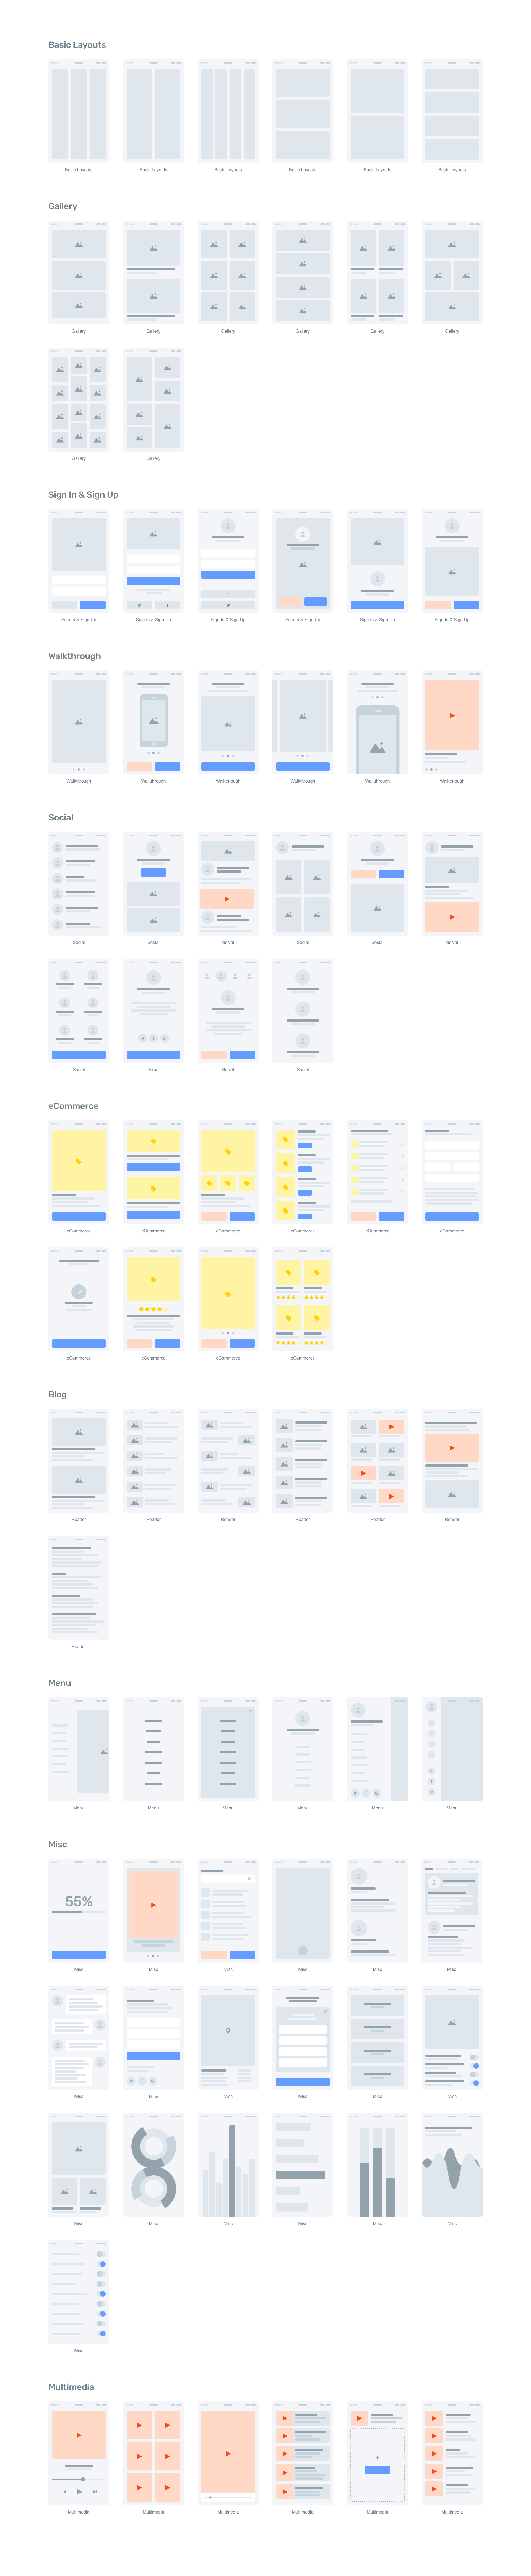 Greyhound - Free Flowchart Kit - Greyhound - Free Flowcharts for Figma & Sketch App. Create beautiful sitemaps and wireframes with fully customizable 200+ ready-to-use flowcharts.